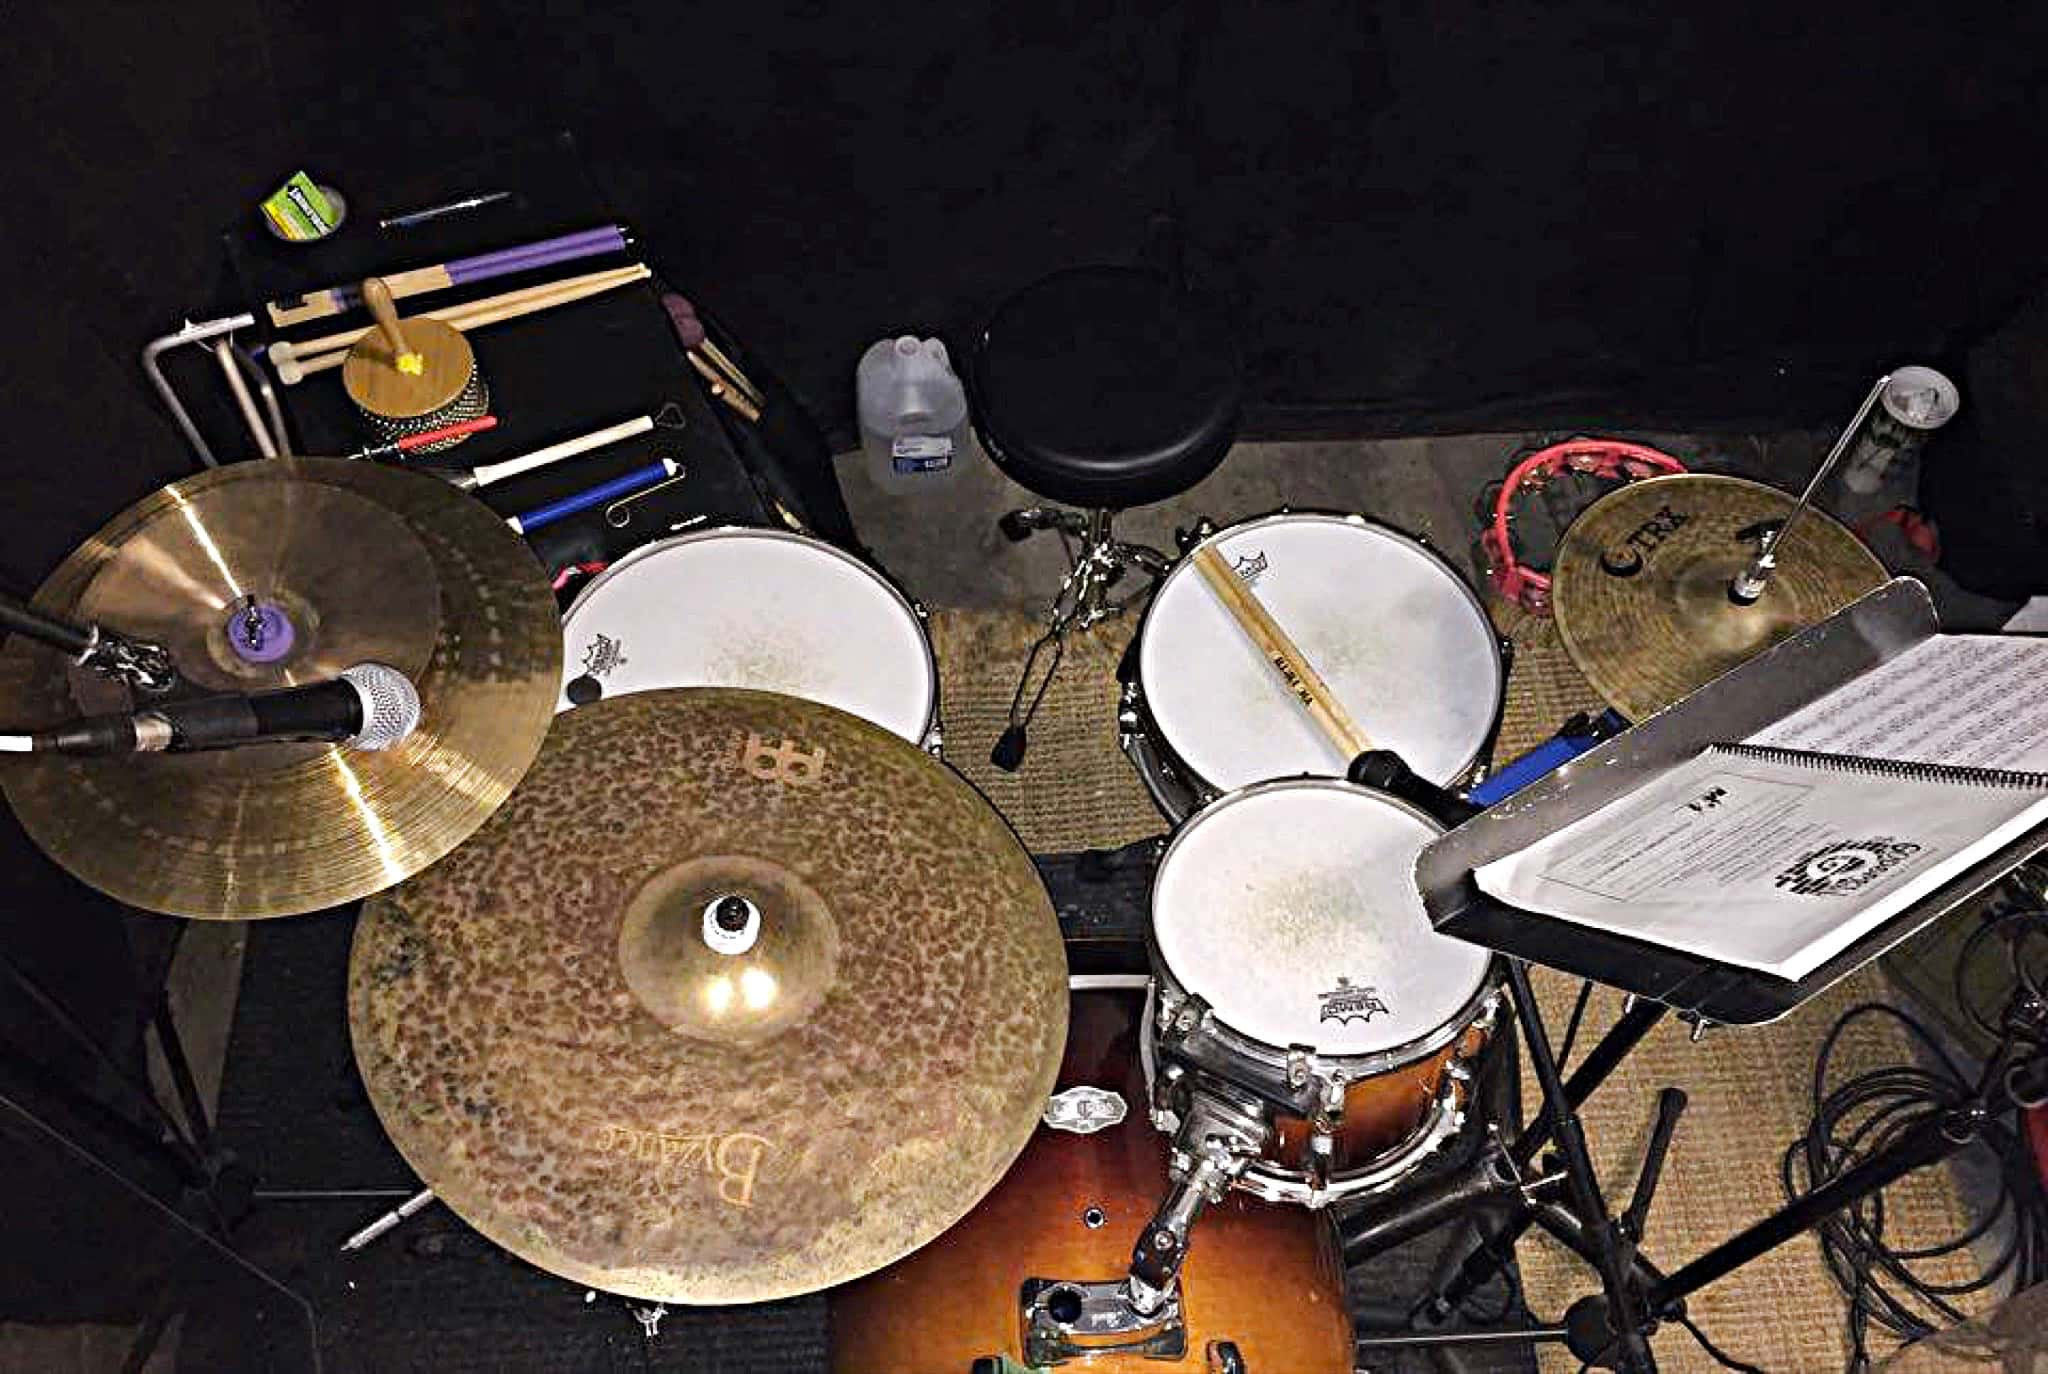 Greg Hersey's setup for Godspell at the Players by the Sea Theatre in Jacksonville Beach, Florida.